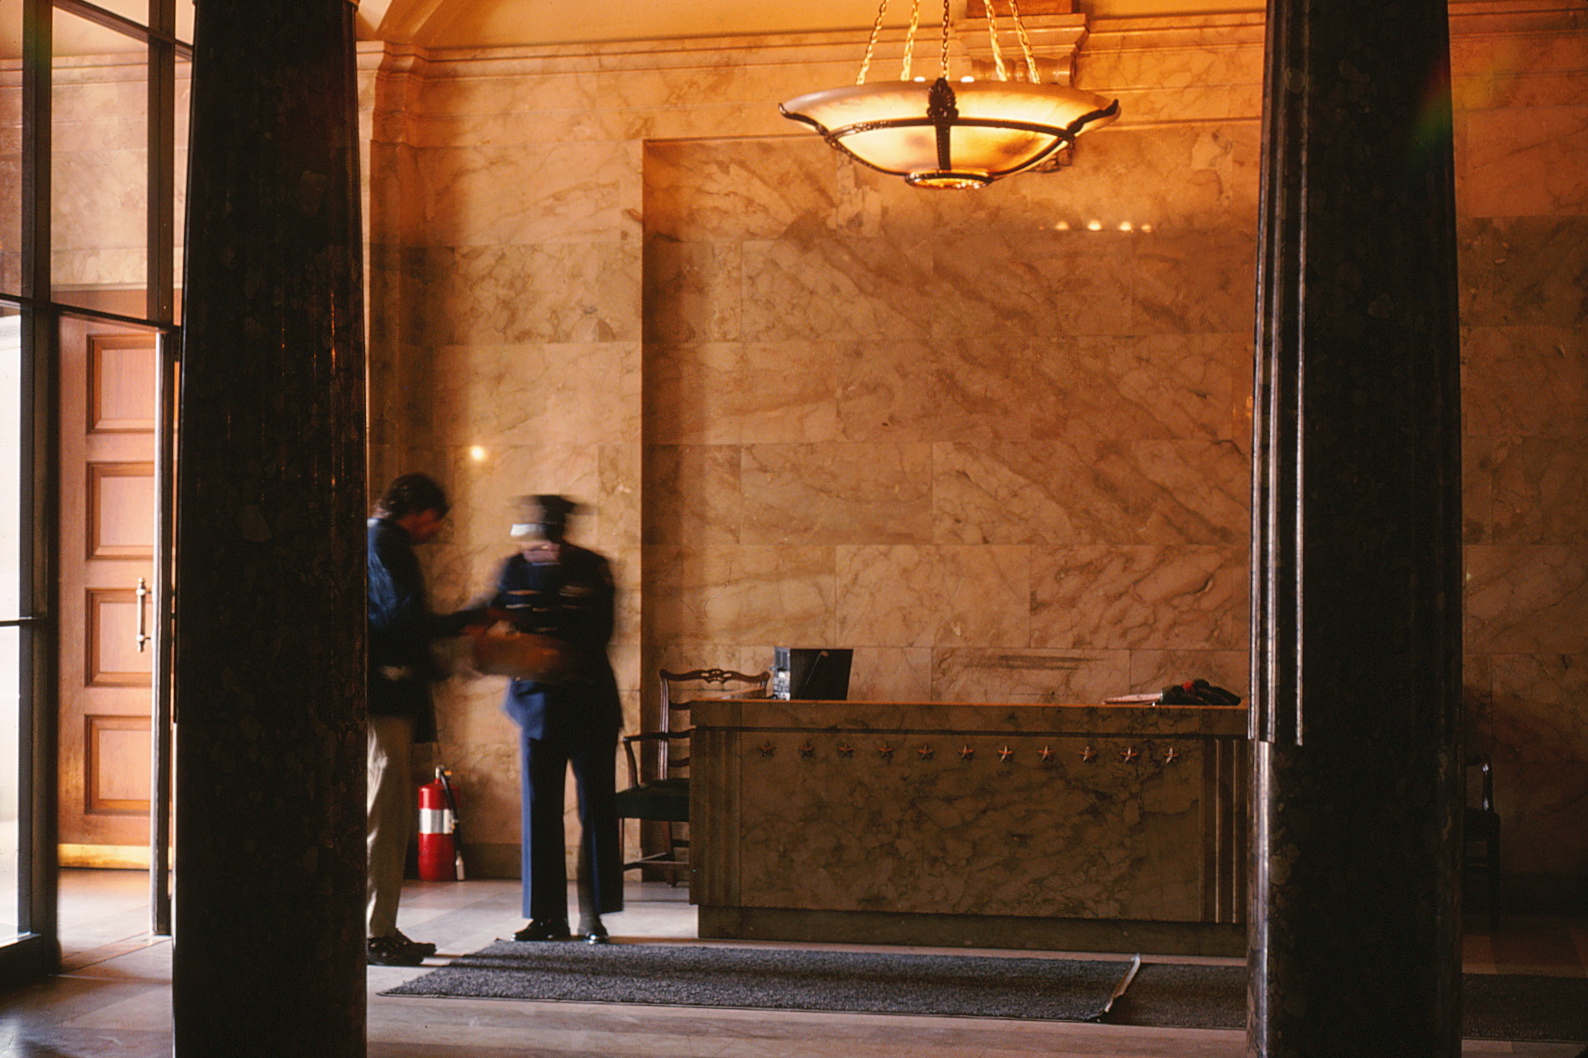 Photograph of the Capitol lobby featuring two guards and the main security desk